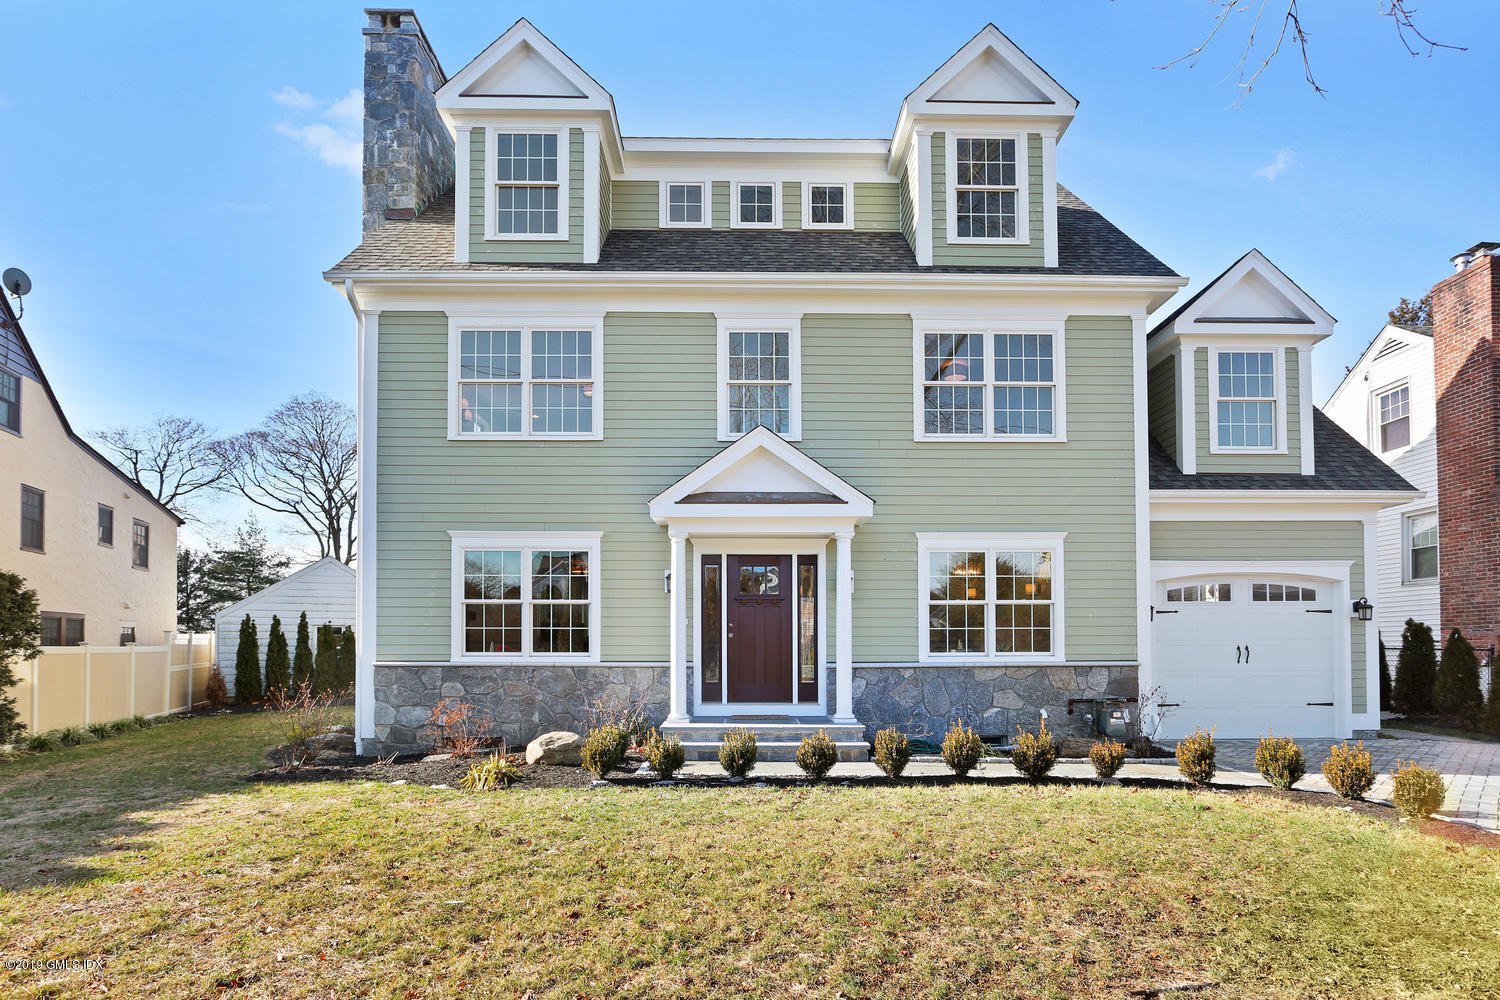 10 Windy Knolls Greenwich,Connecticut 06831,5 Bedrooms Bedrooms,3 BathroomsBathrooms,Single family,Windy Knolls,105172